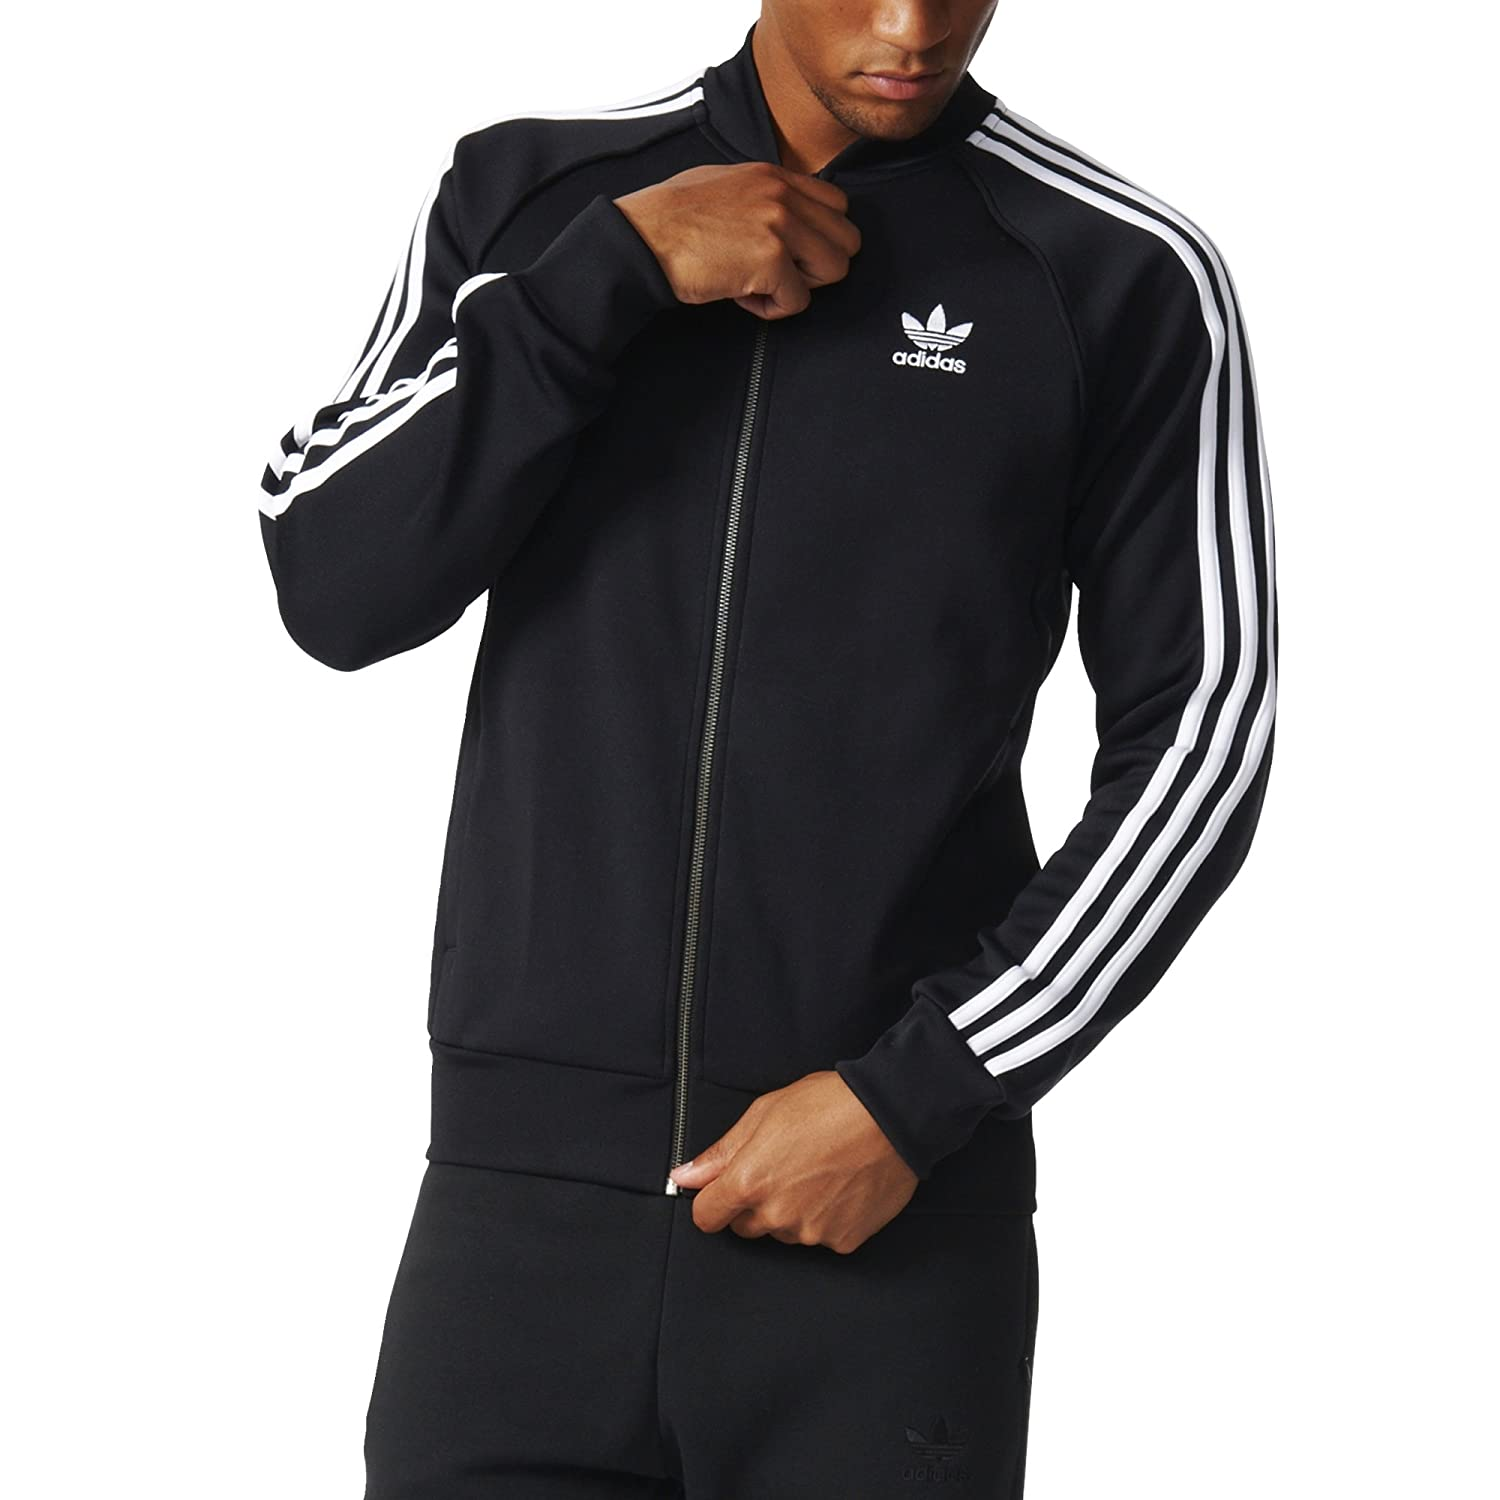 adidas Originals Men's Superstar Track Top Black XLTG BK5921